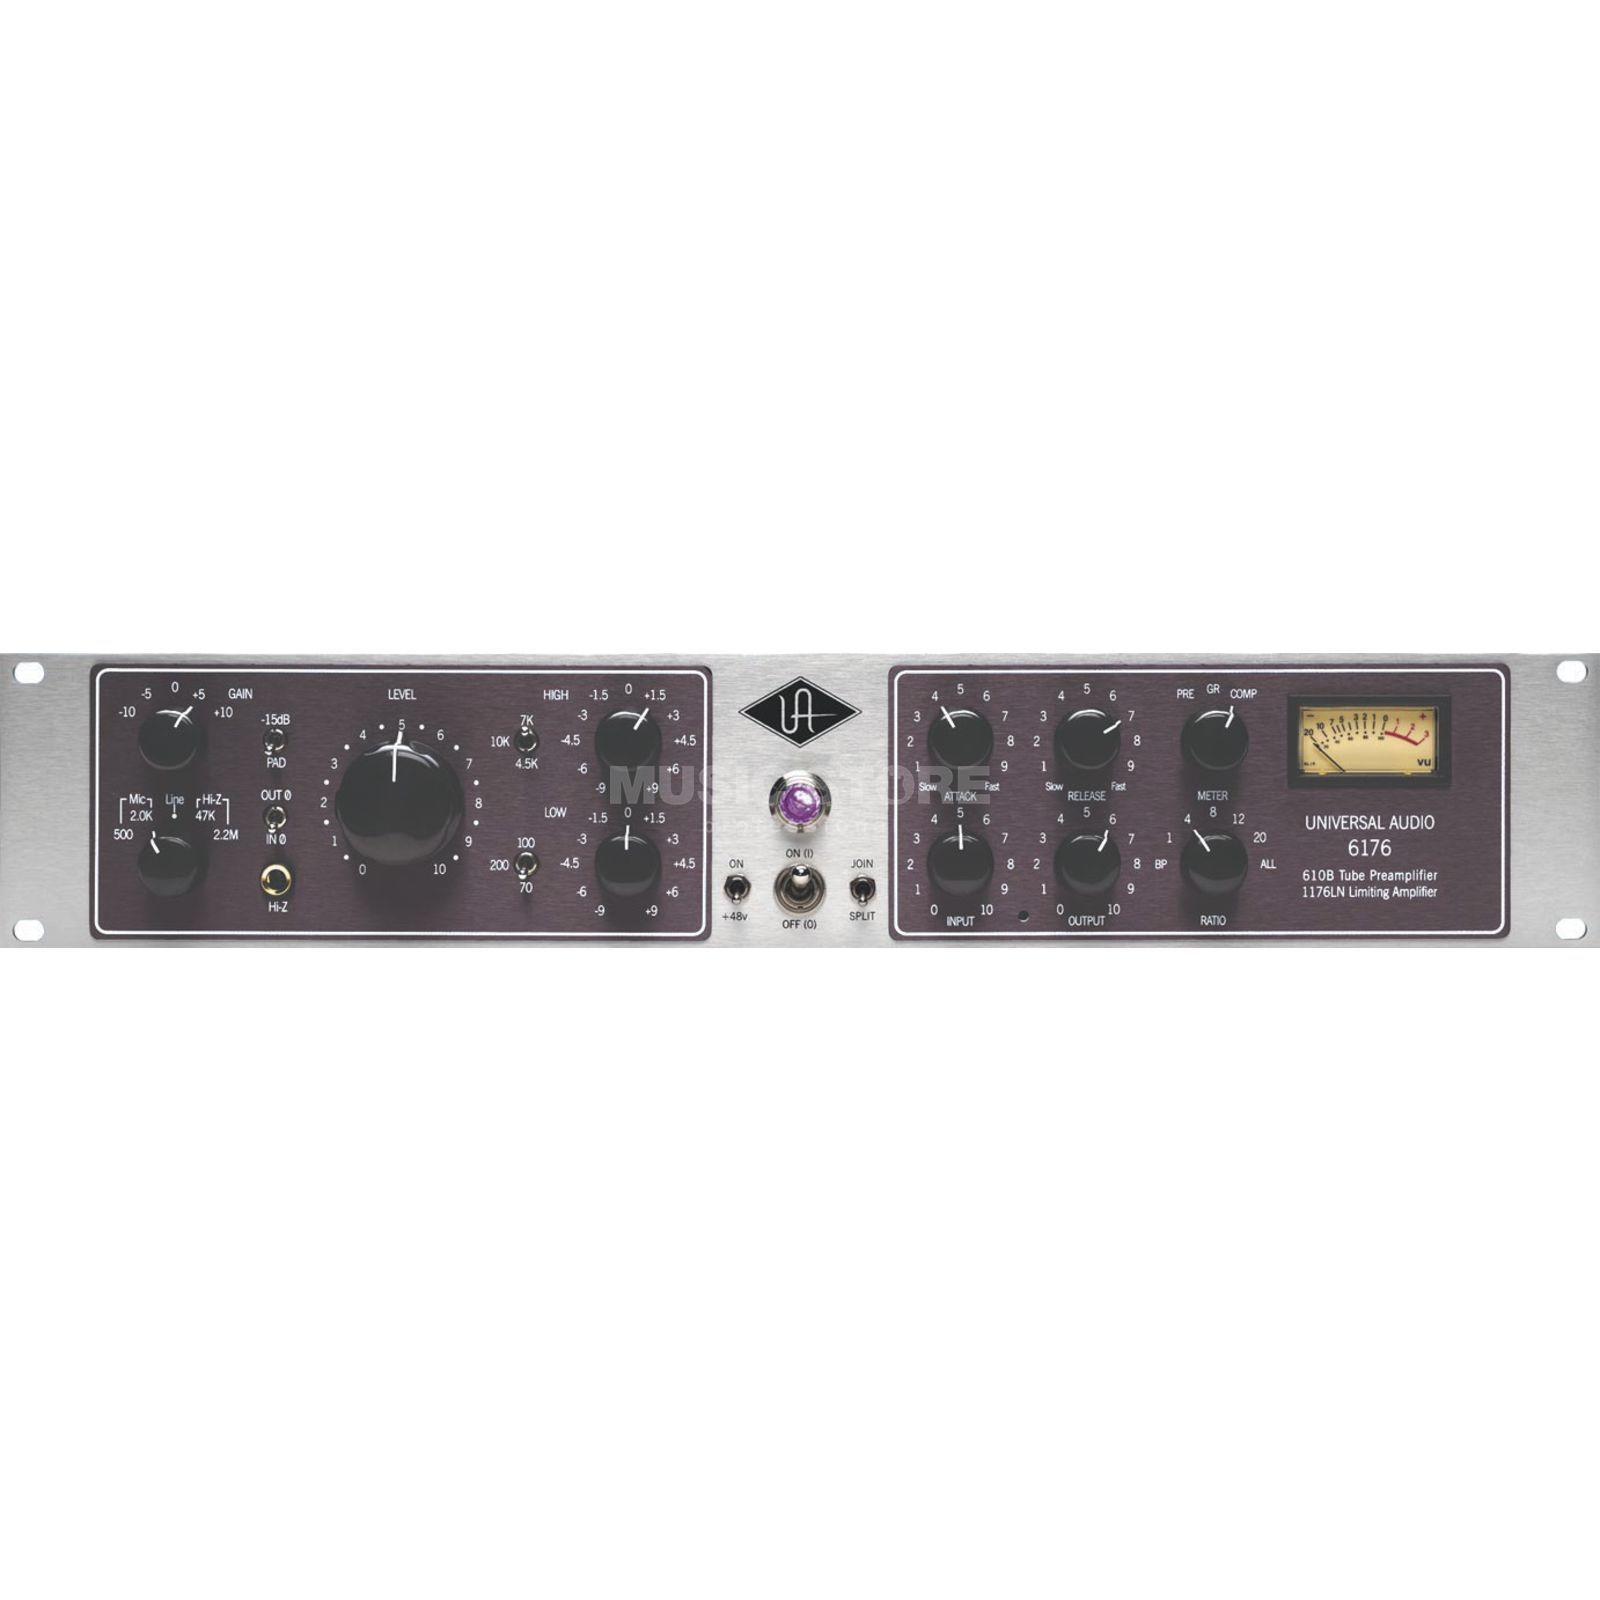 Universal Audio 6176 Tube-PreAmp & Compressor Combination of 610 and 1176 Produktbillede